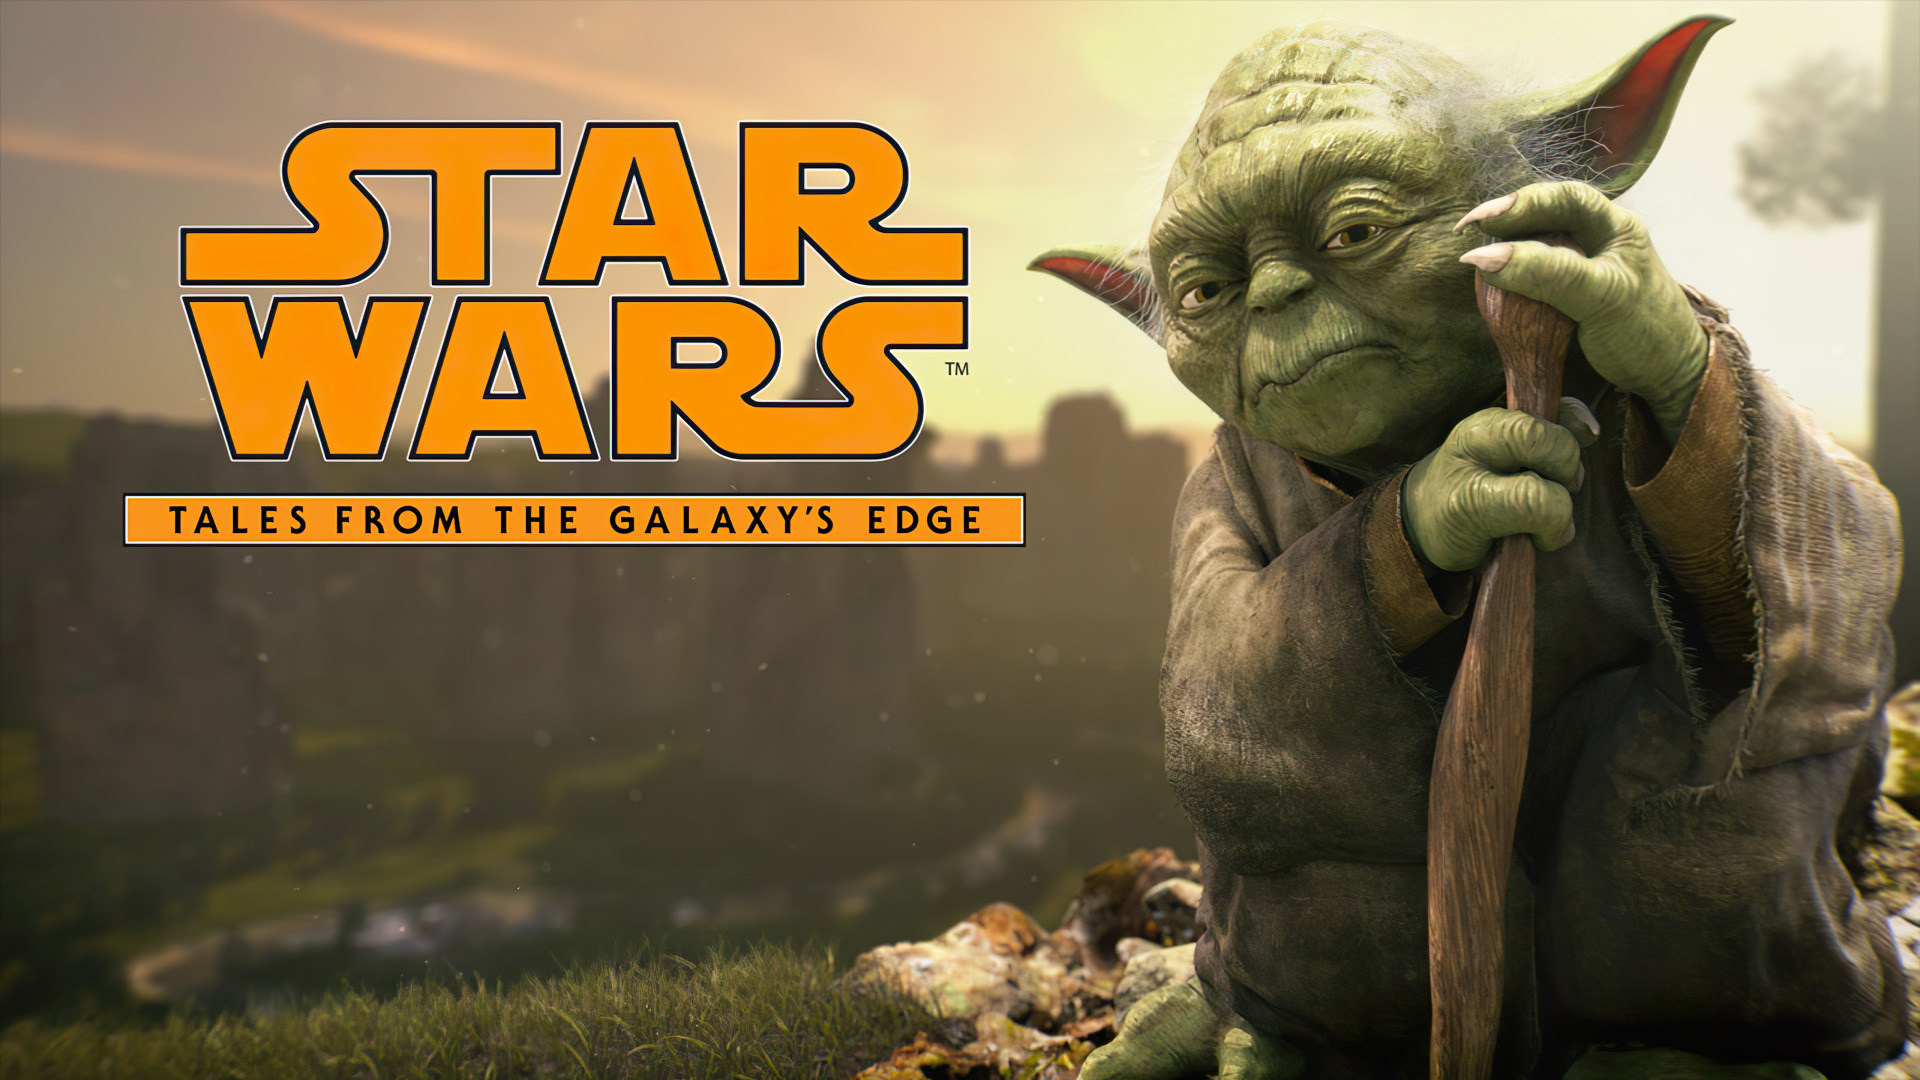 Trailer, Facebook, Virtual Reality, VR, Star Wars, Oculus VR, Oculus, ILMxLab, Oculus Quest, Tales from the Galaxy's Edge, Star Wars: Tales from the Galaxy's Edge